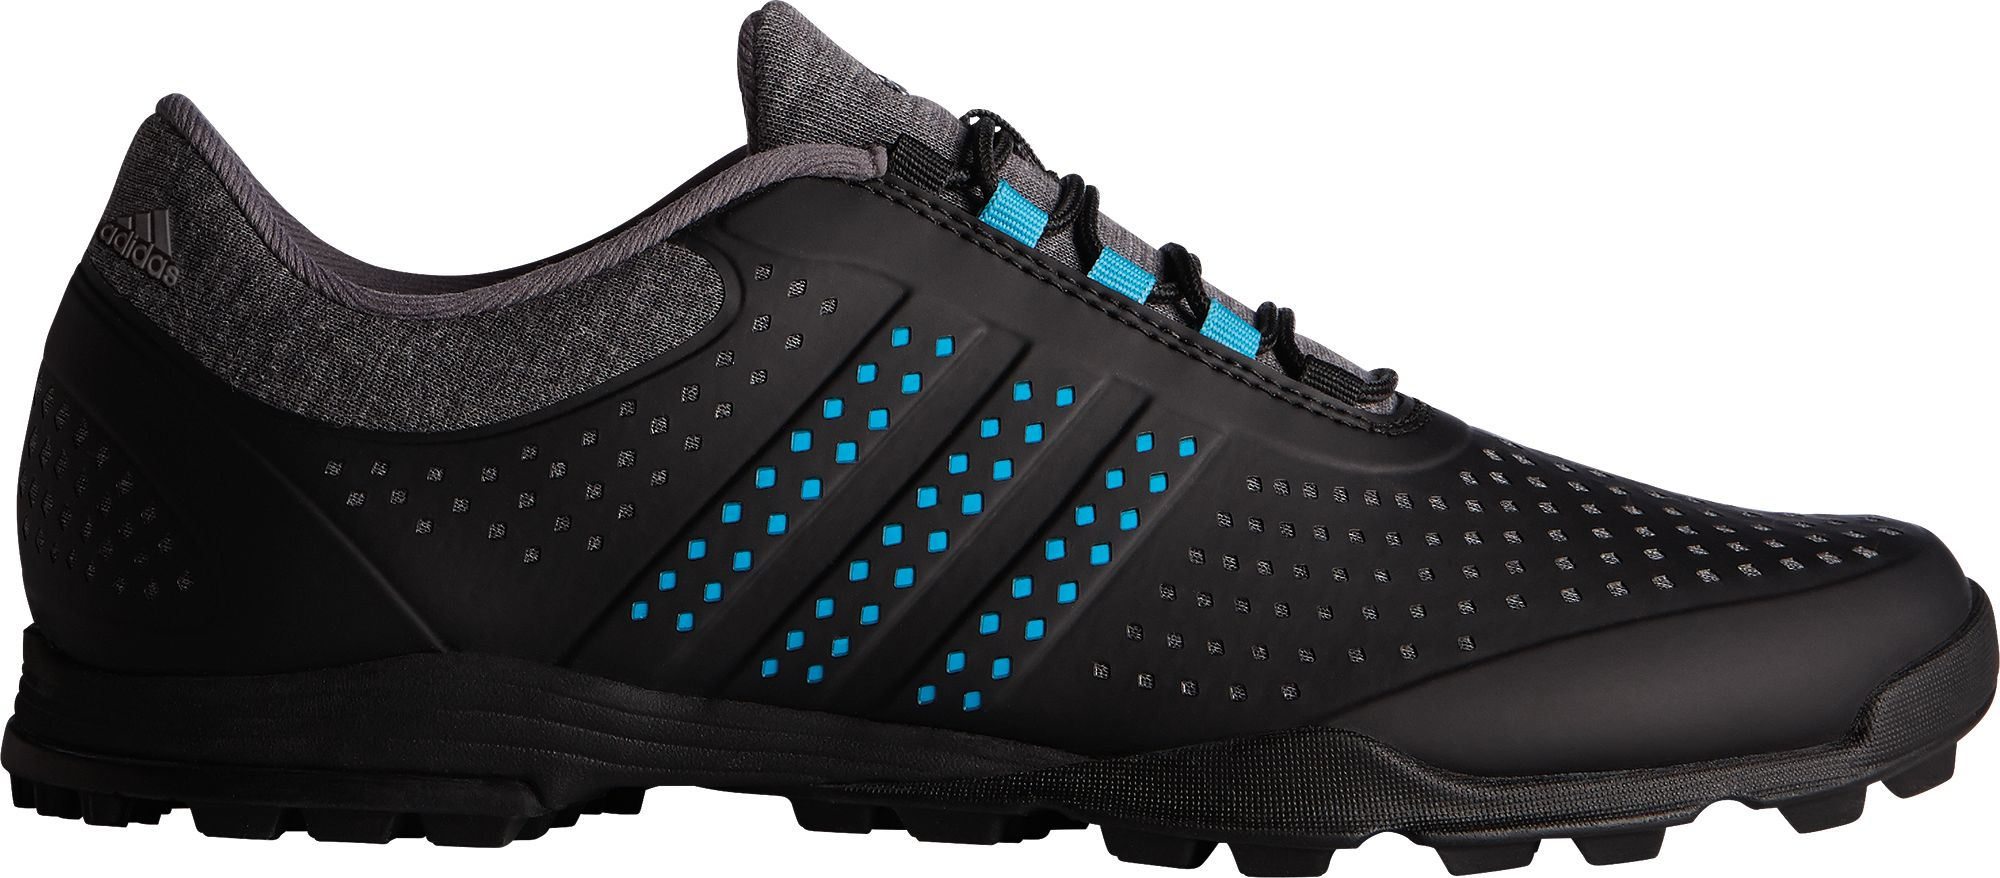 adidas Women\u0027s adipure sport Golf Shoes